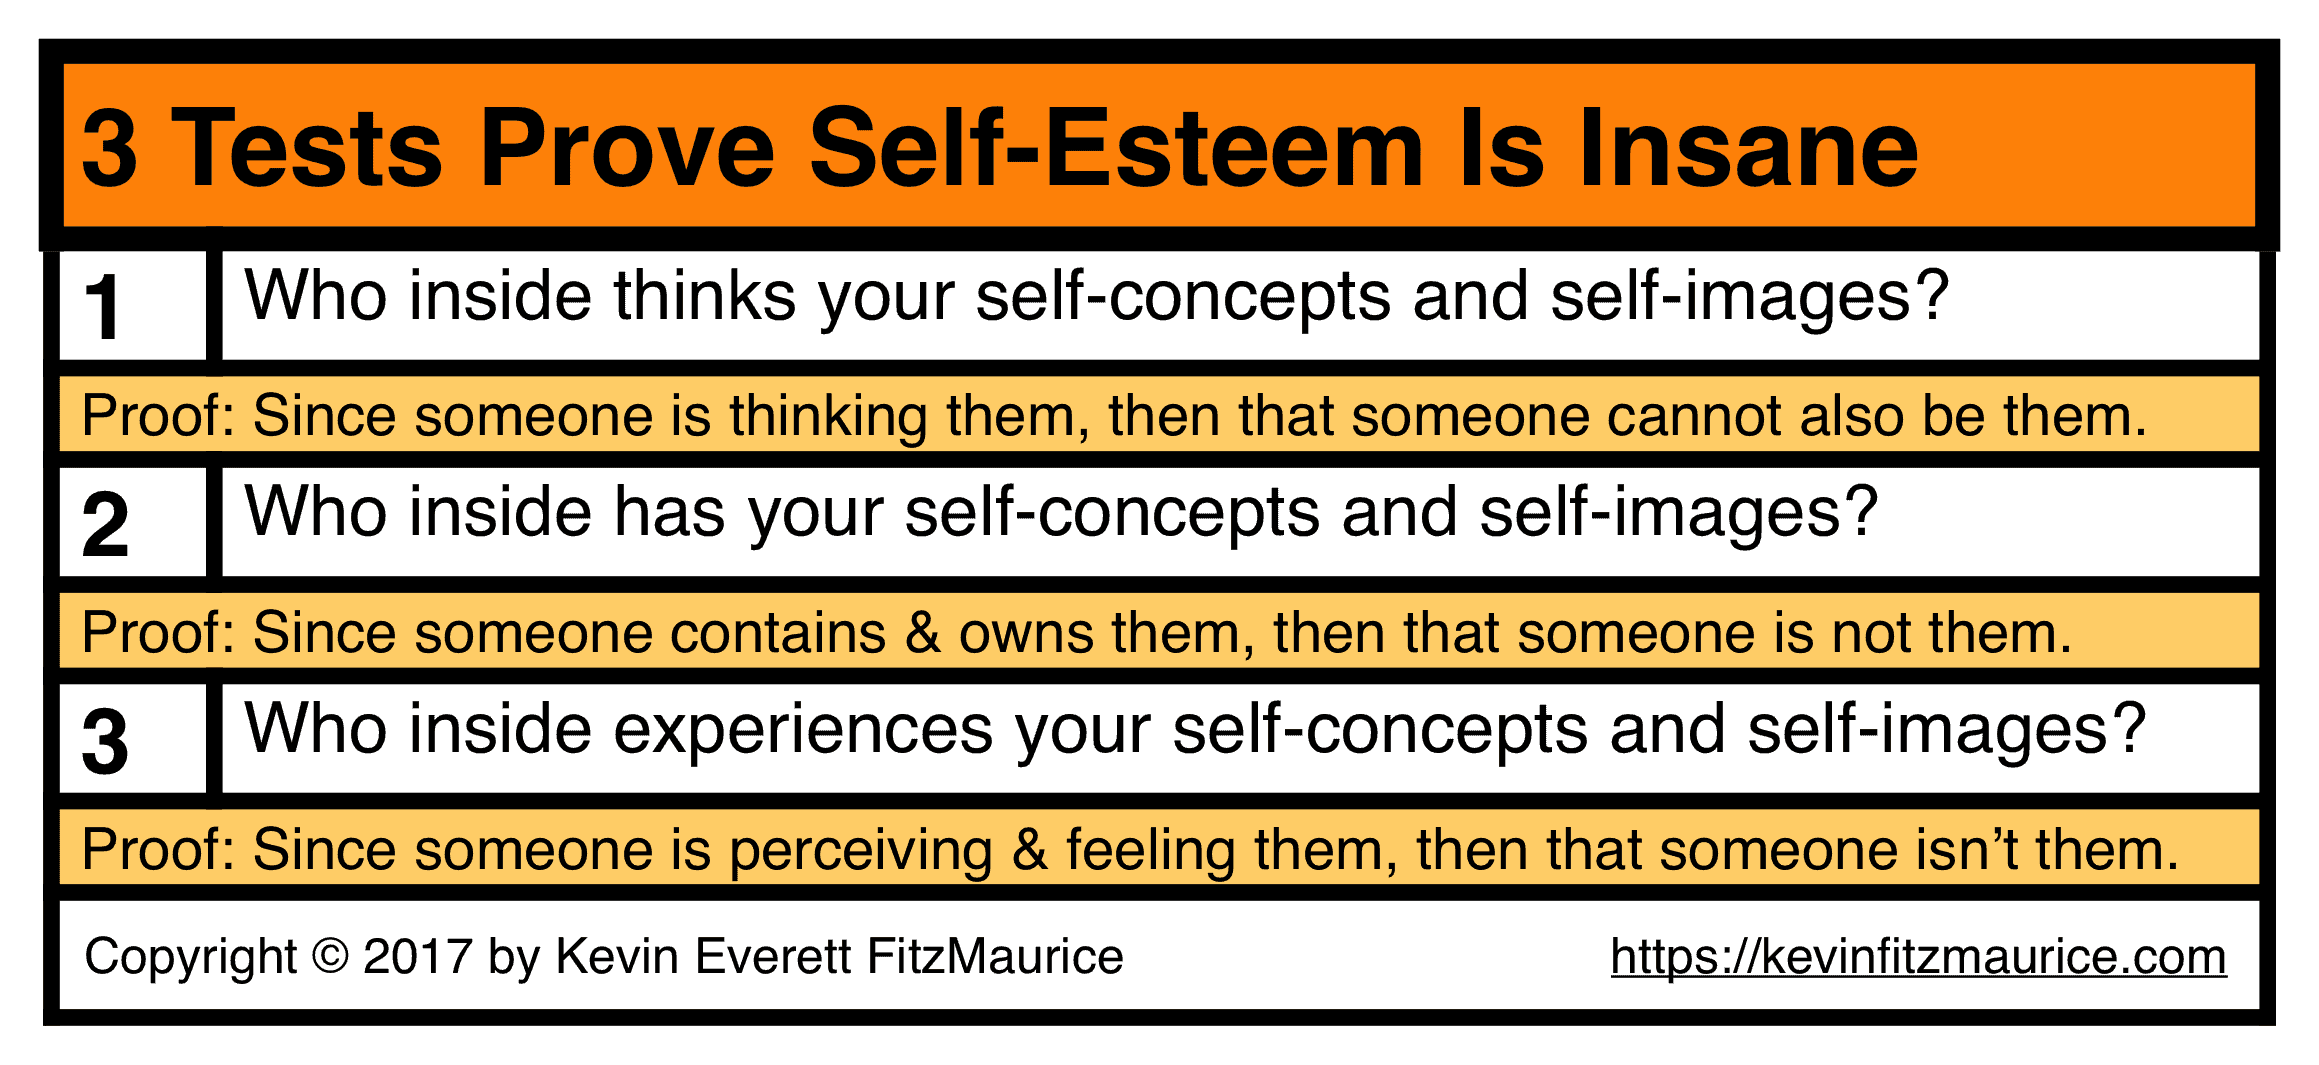 3 Tests Prove Self-Esteem Is Insane